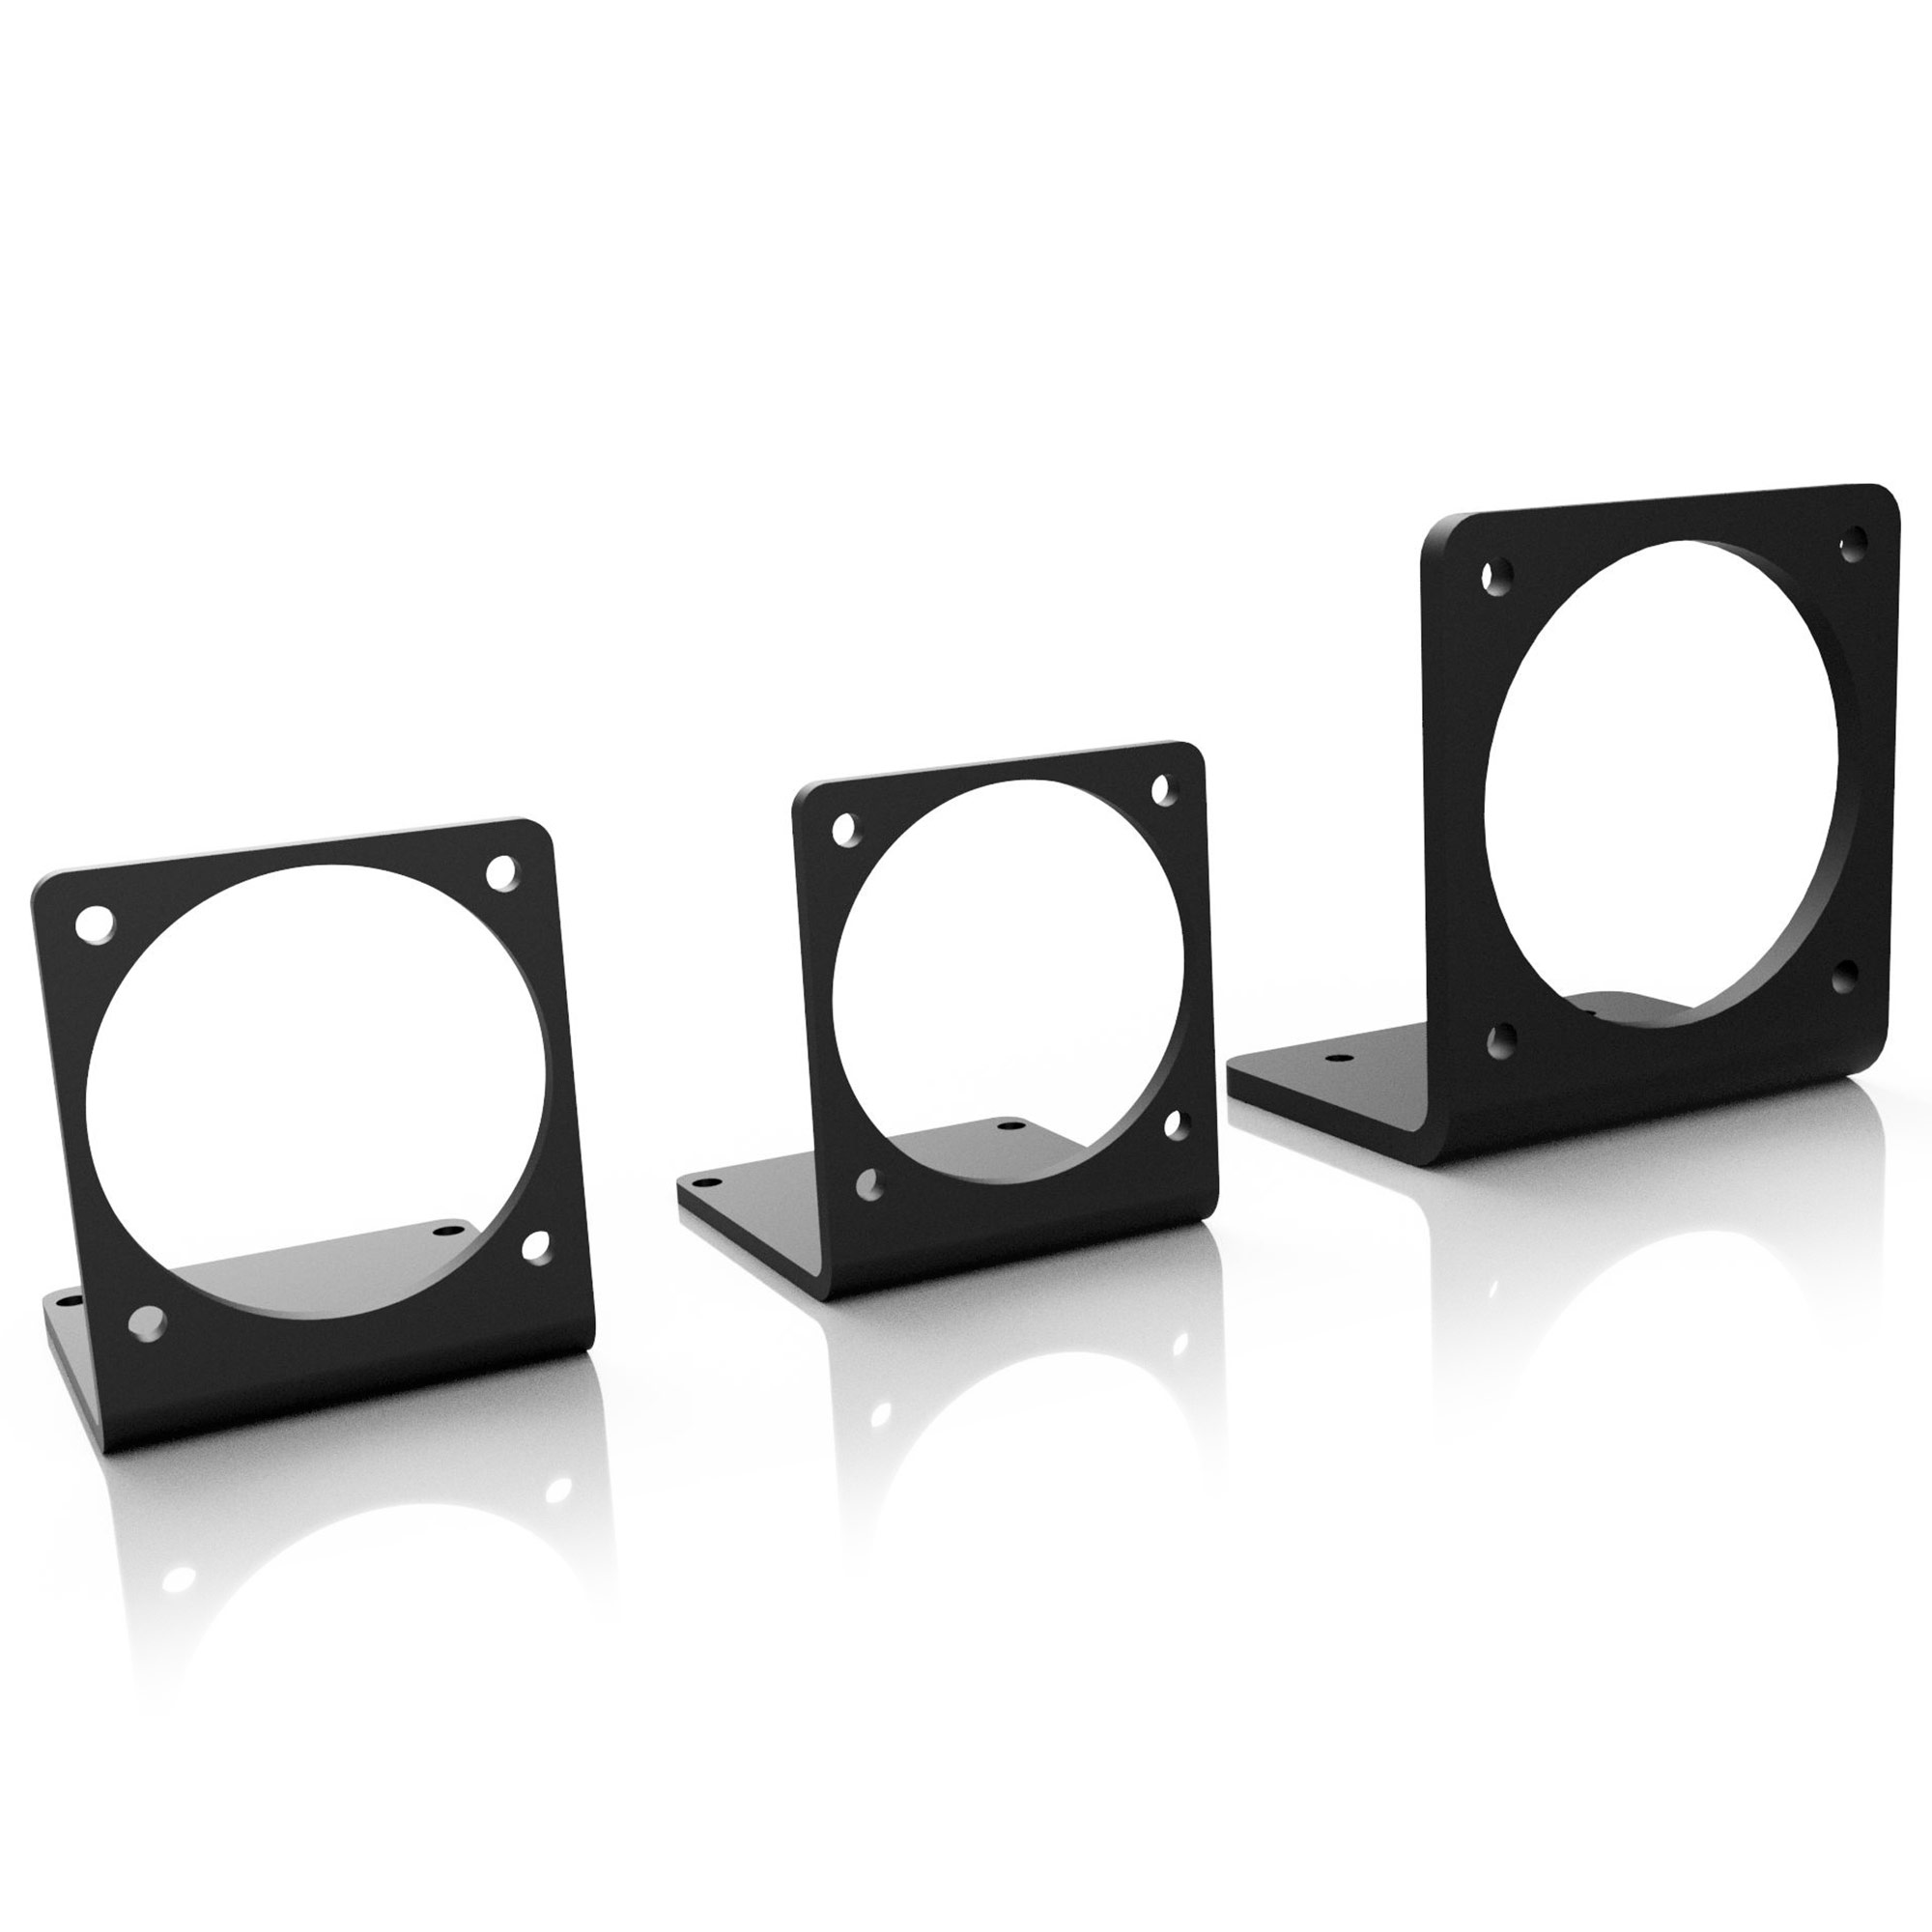 Details about Sim Lab OSW Racing Steering System Mounting Bracket For MiGe  130ST Motor